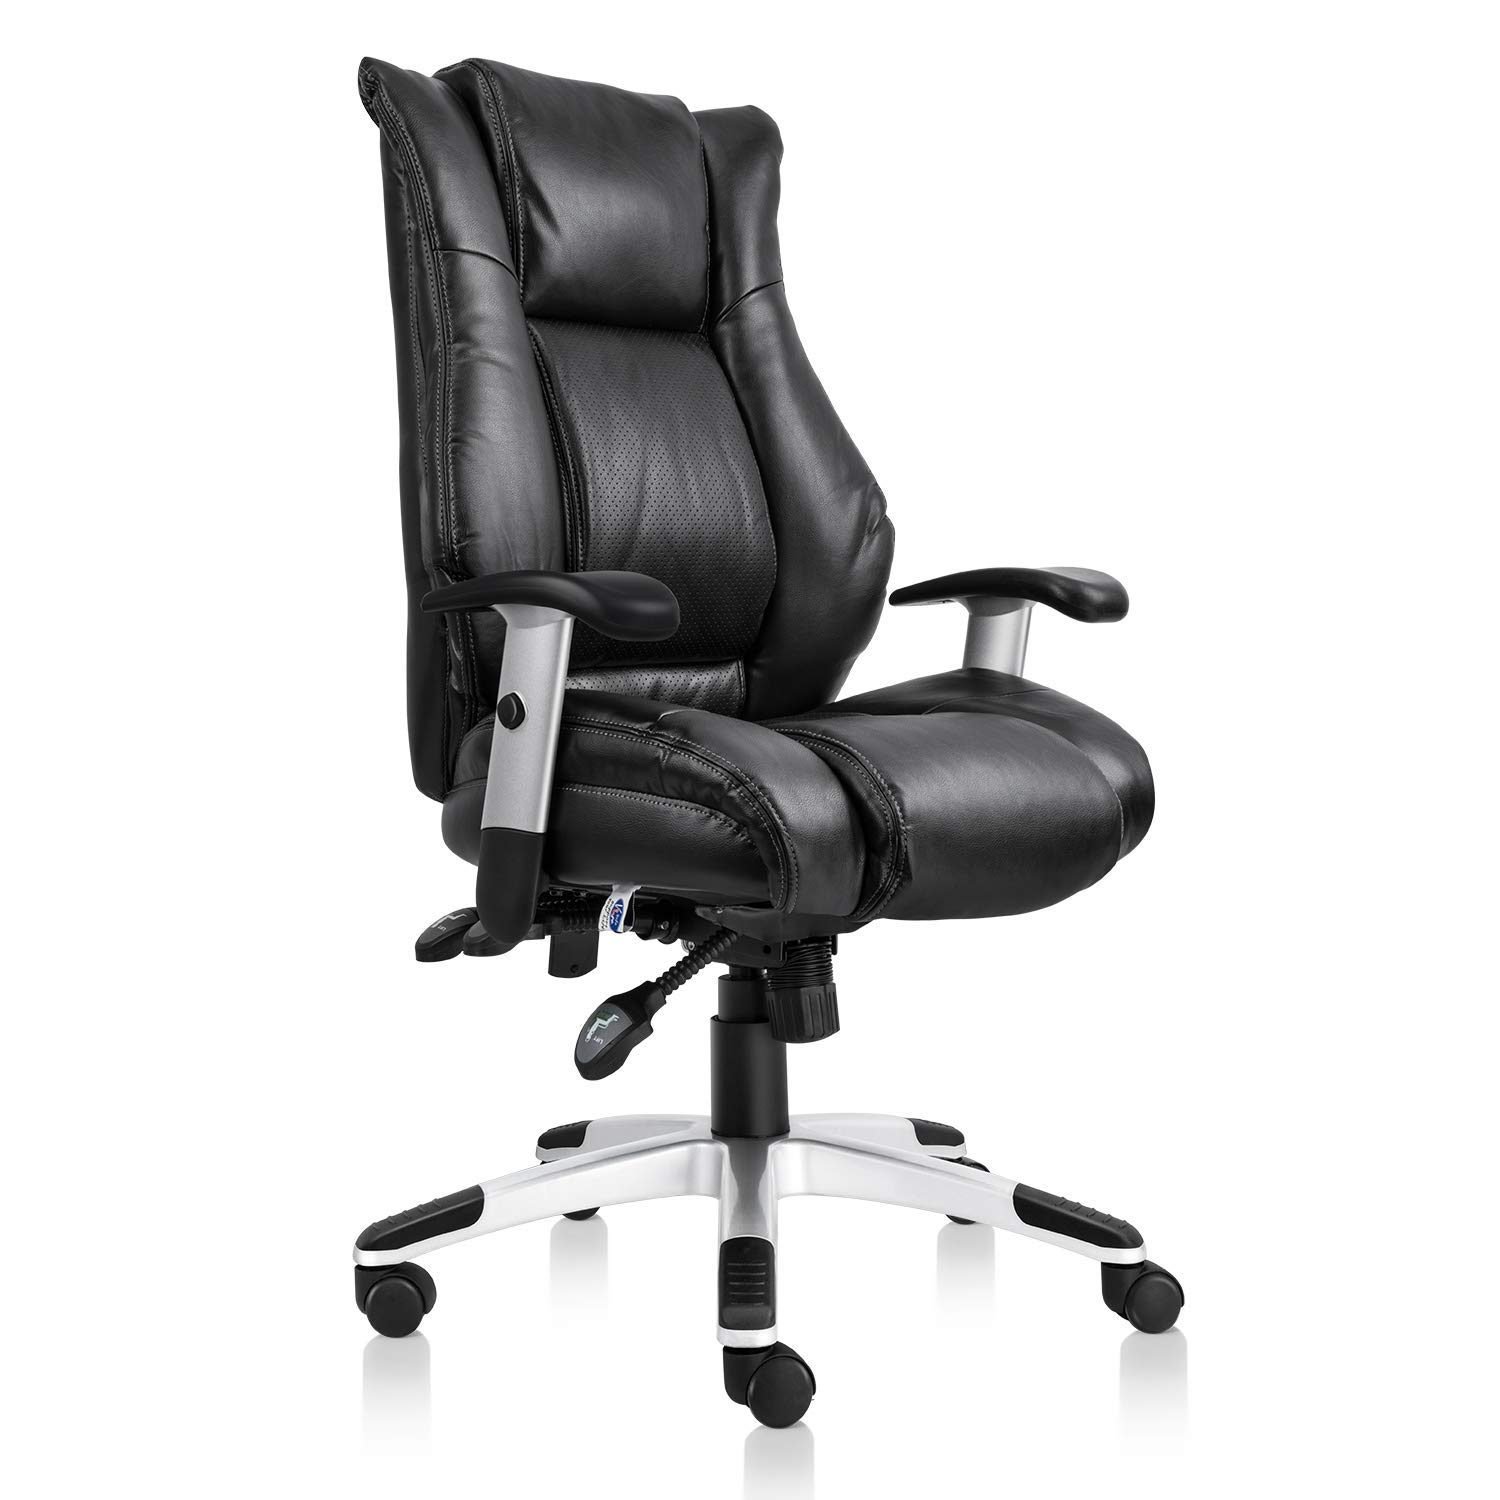 Smugdesk Ergonomic Office Chair Lumbar Support Mesh Chair Computer Swivel Task Chair with Adjustable Armrests, Black